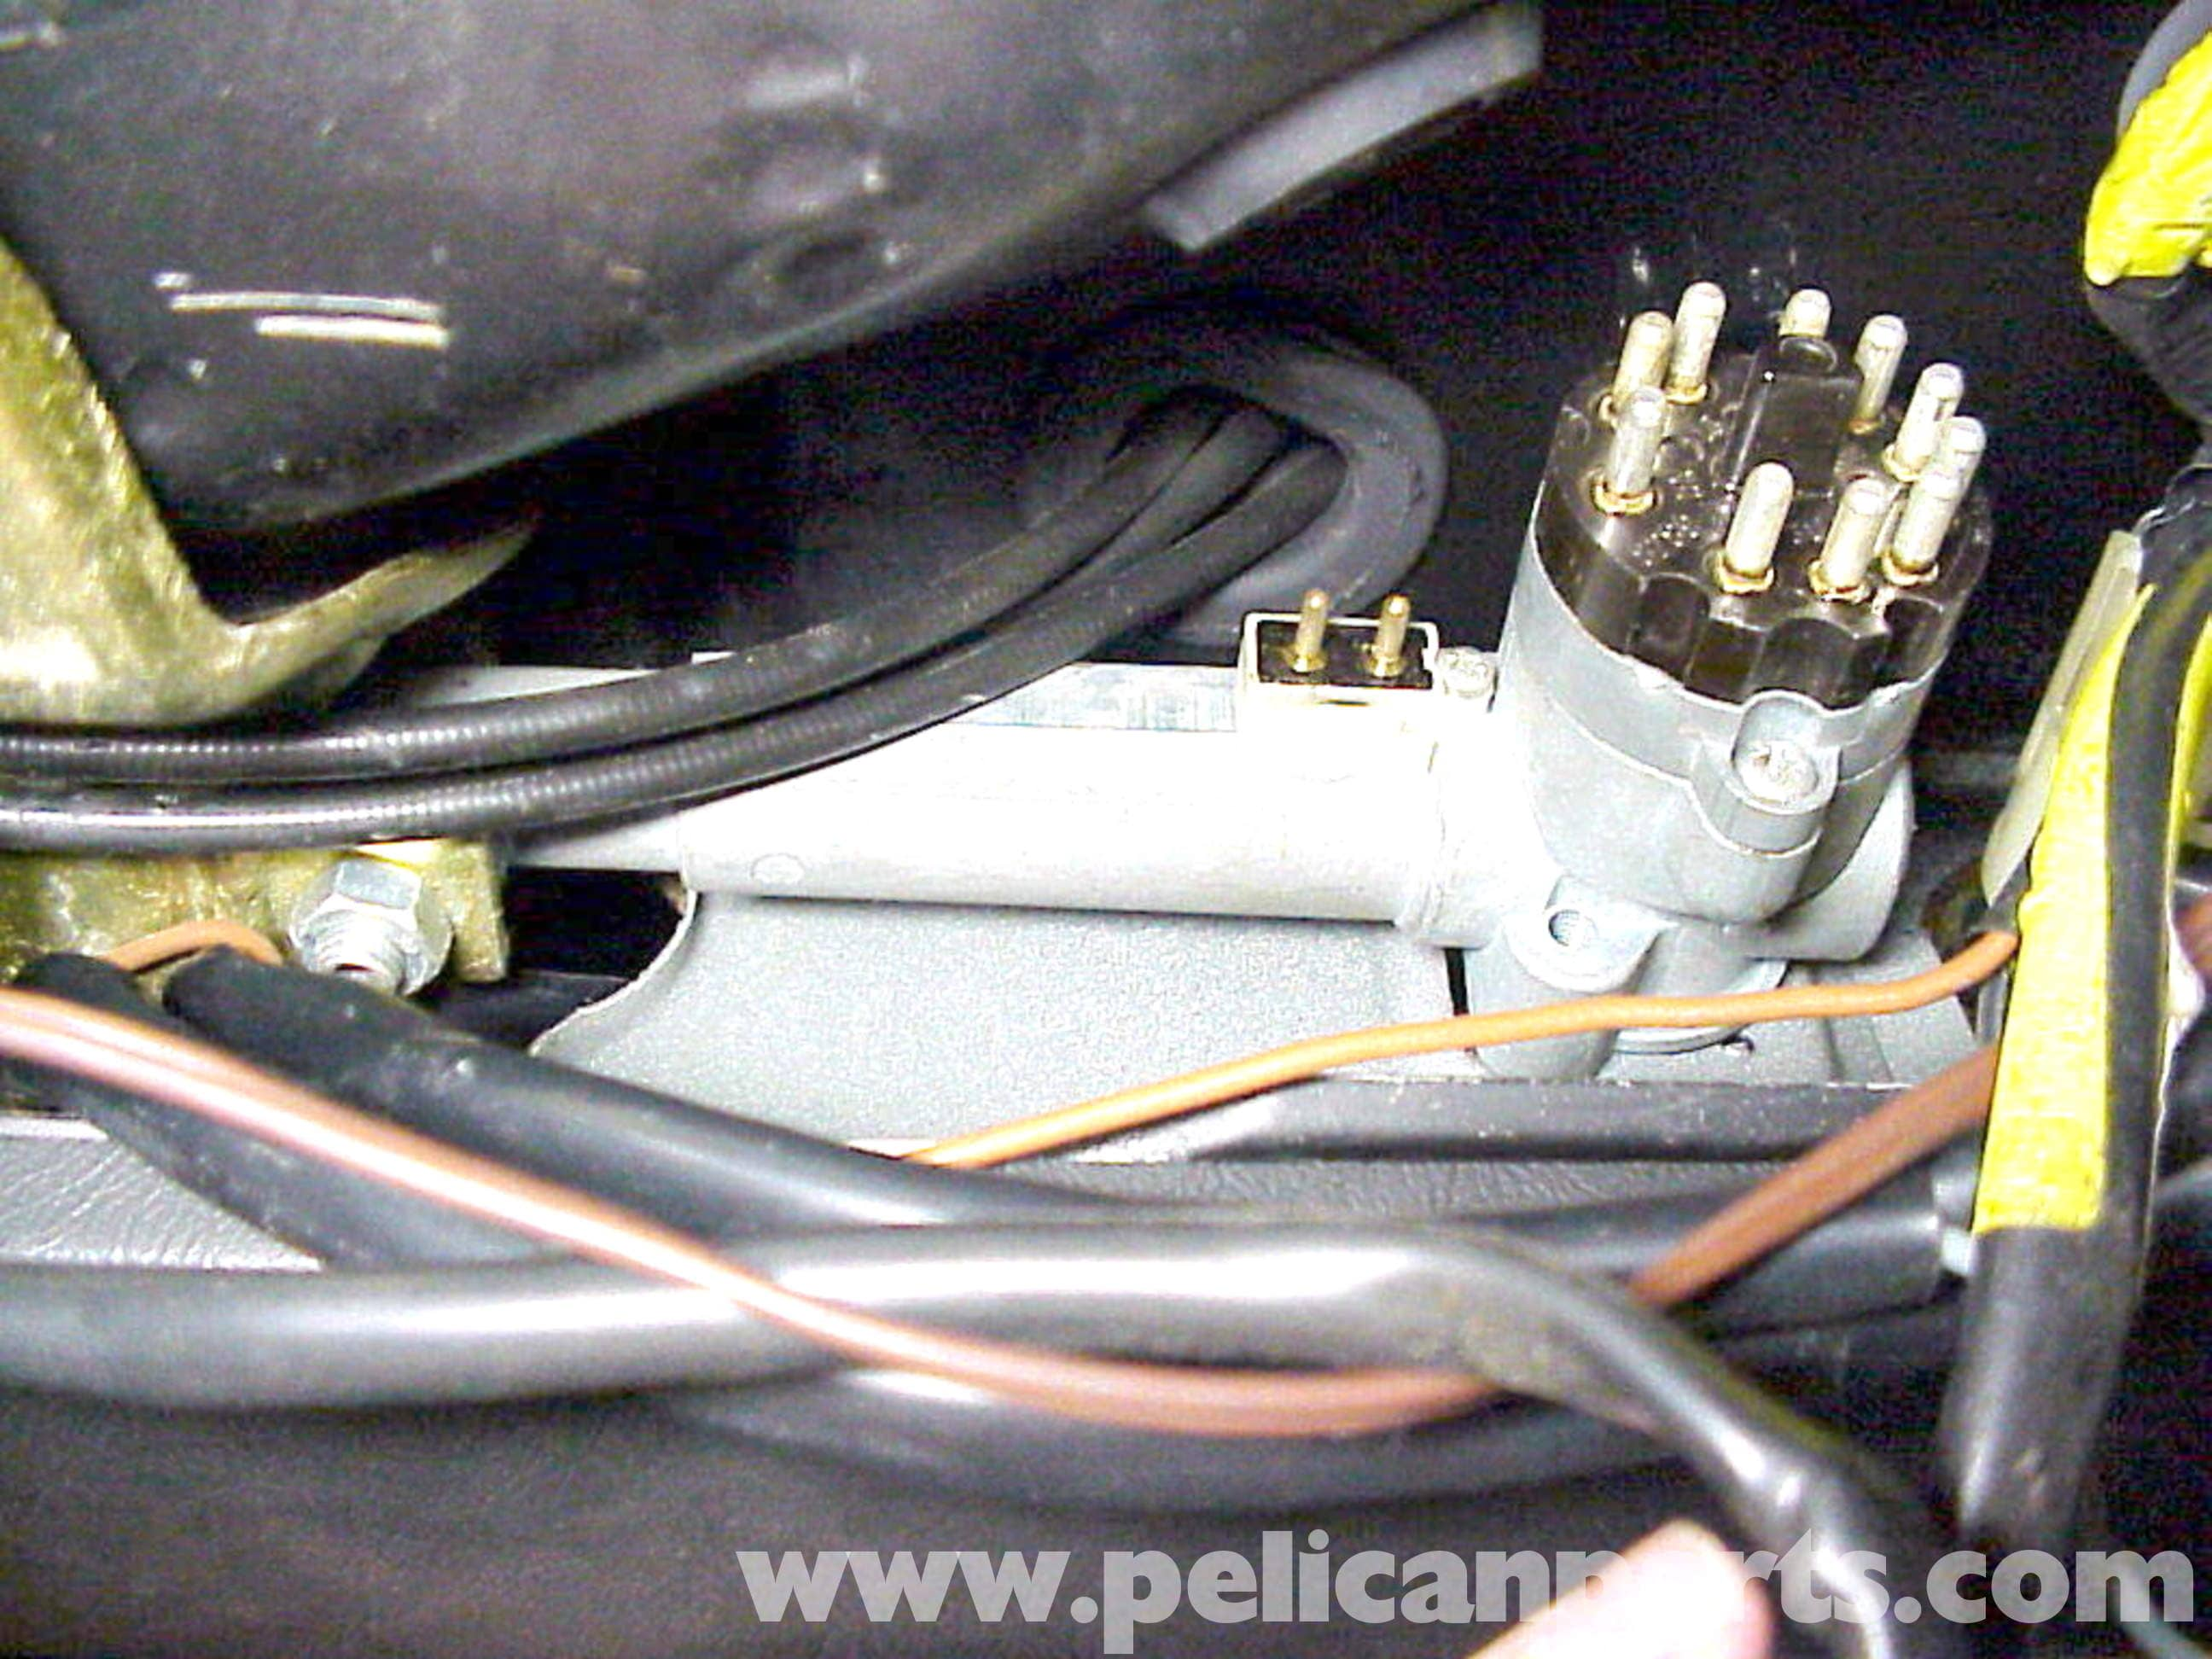 Pic2 1976 porsche 911 wiring diagram 1976 triumph tr6 wiring diagram 1967 porsche 911 wiring diagram at creativeand.co